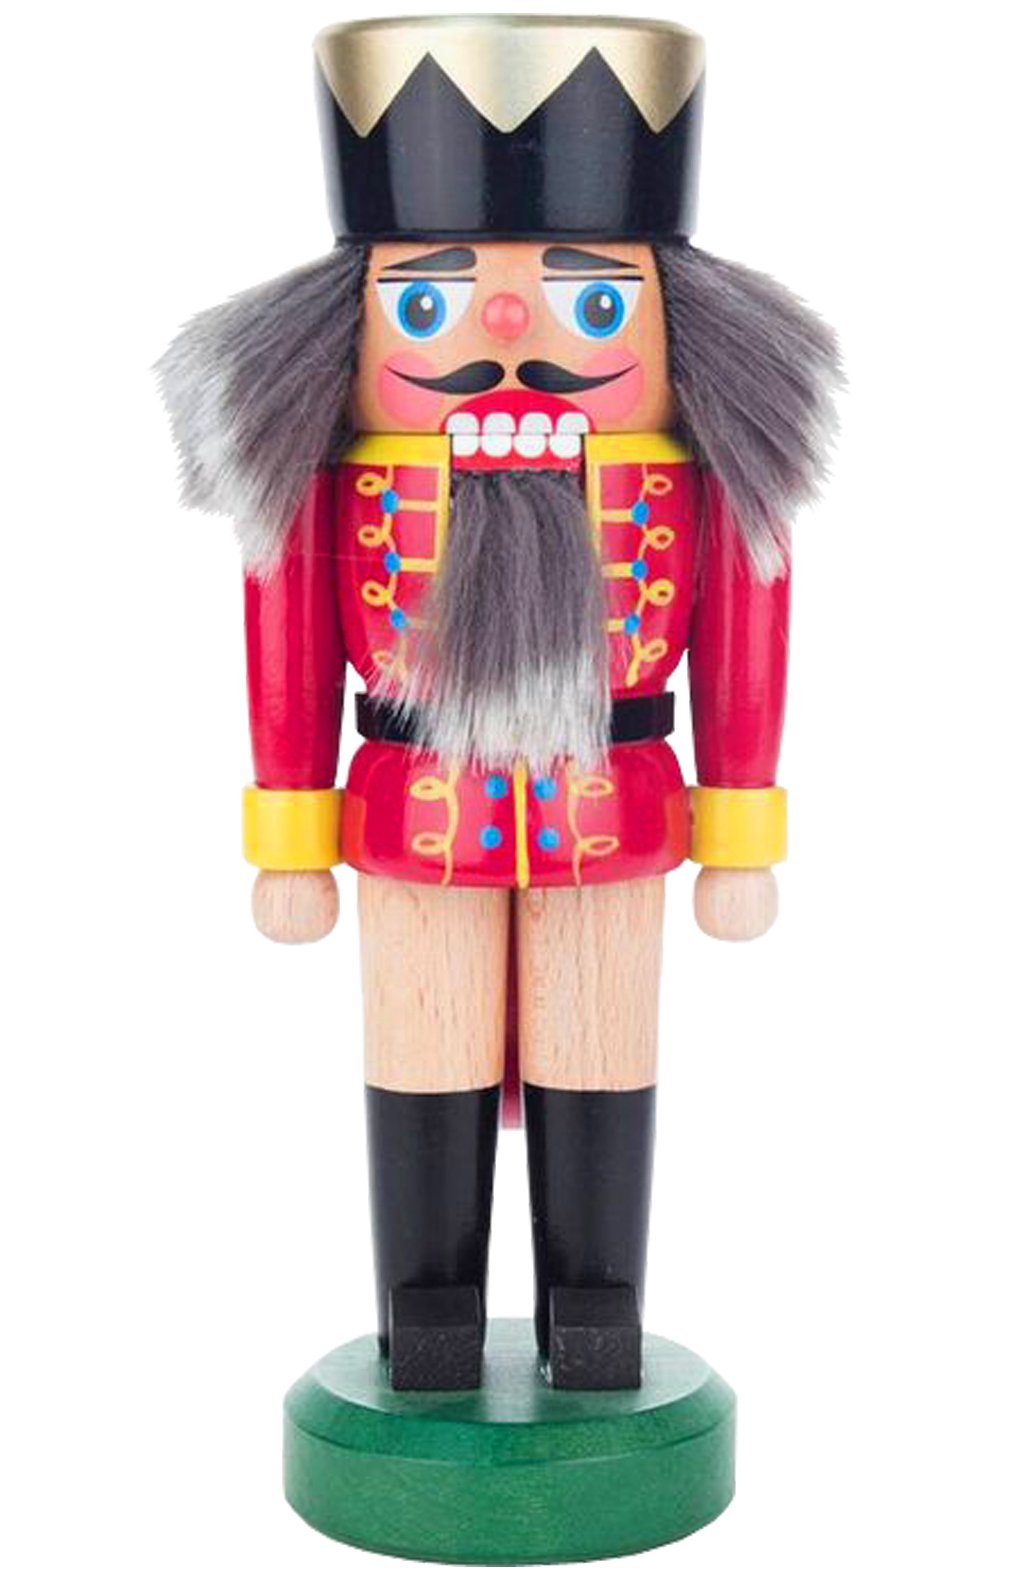 Dregeno 8.25 inch Nutcracker - Red king with two tone hair - Schmidt Christmas Market Christmas Decoration